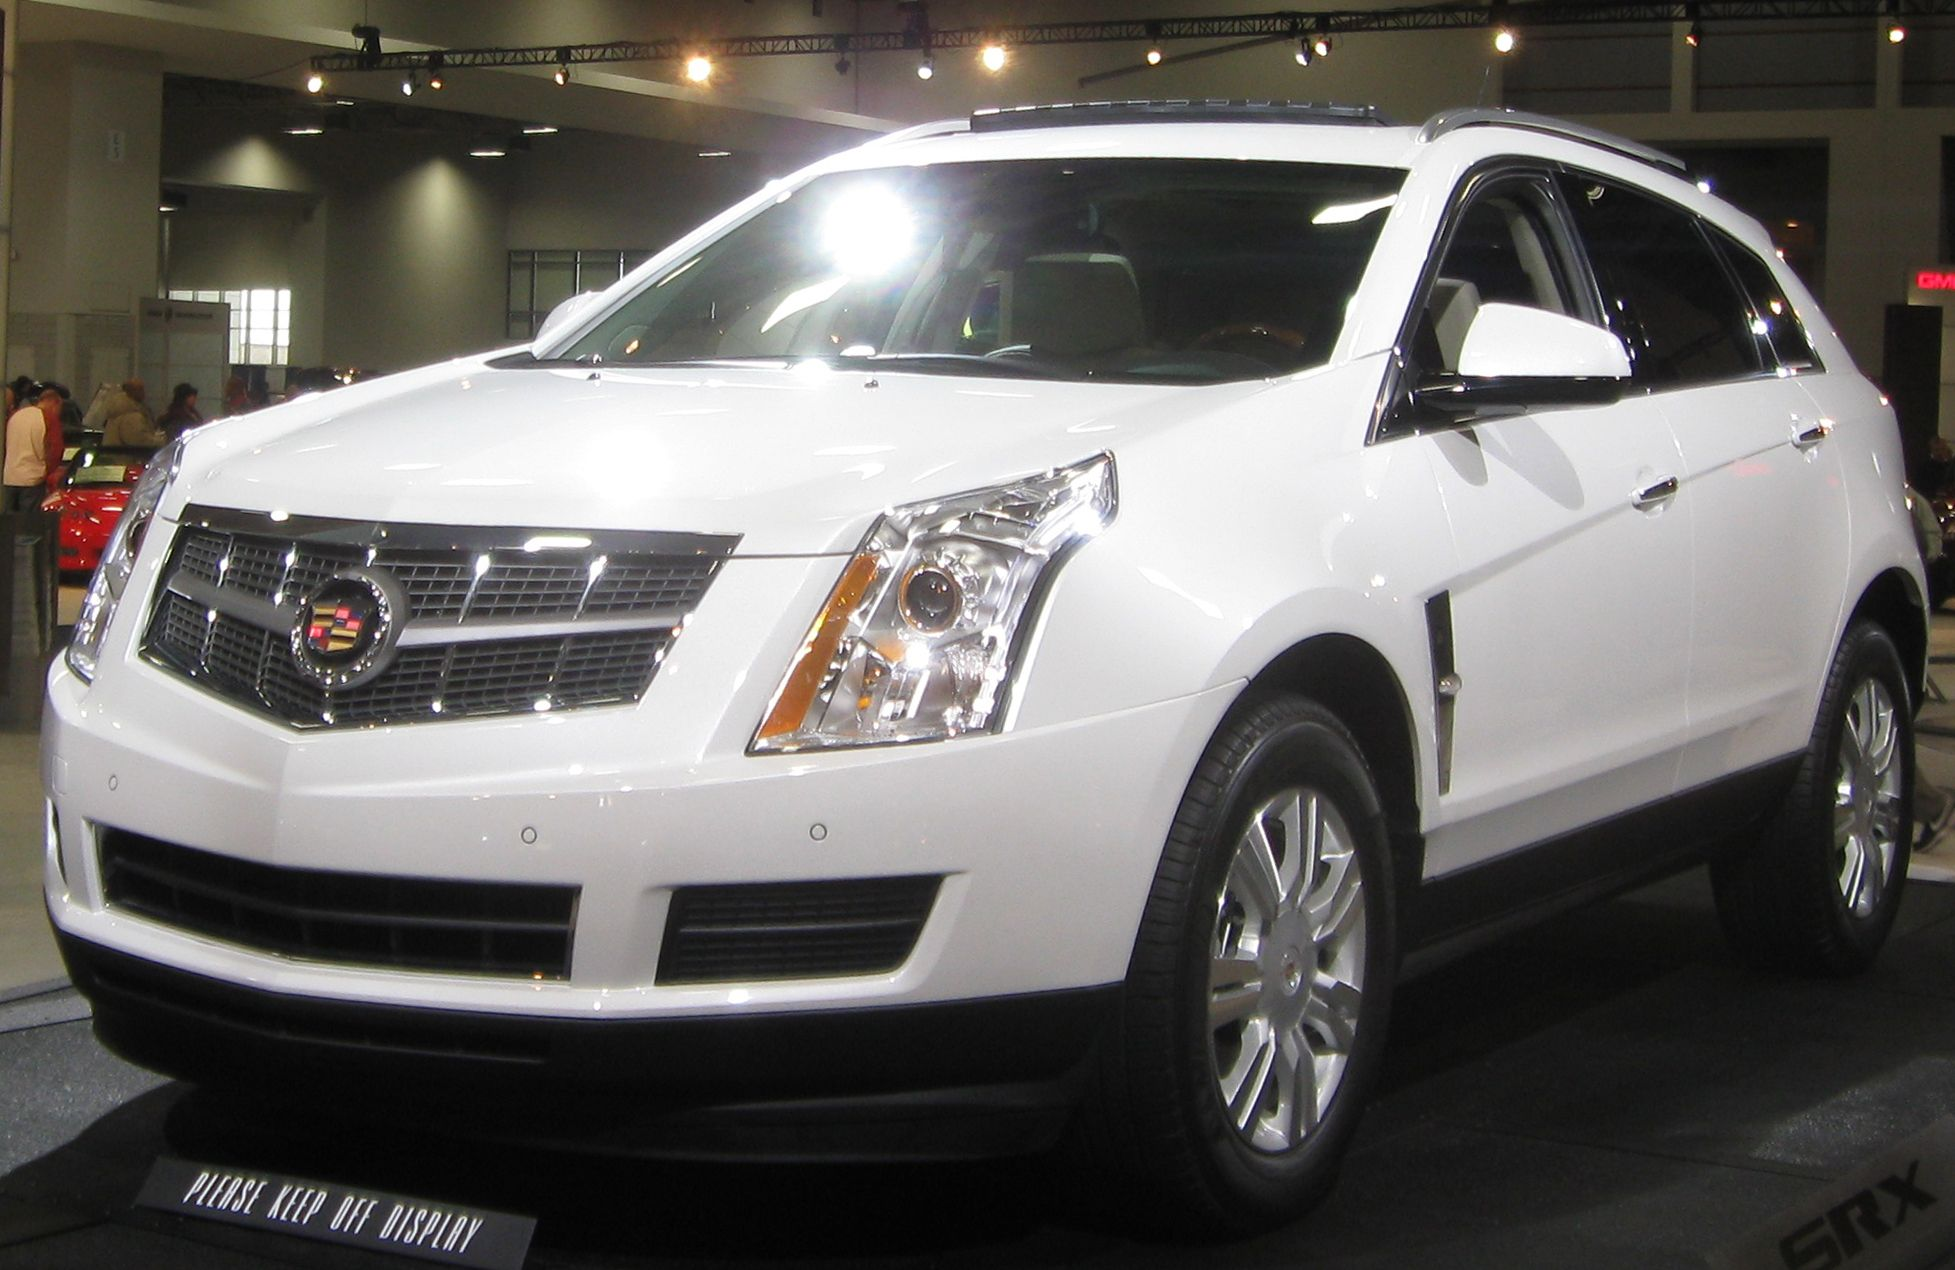 2012 Cadillac SRX love this car I wish I could win it